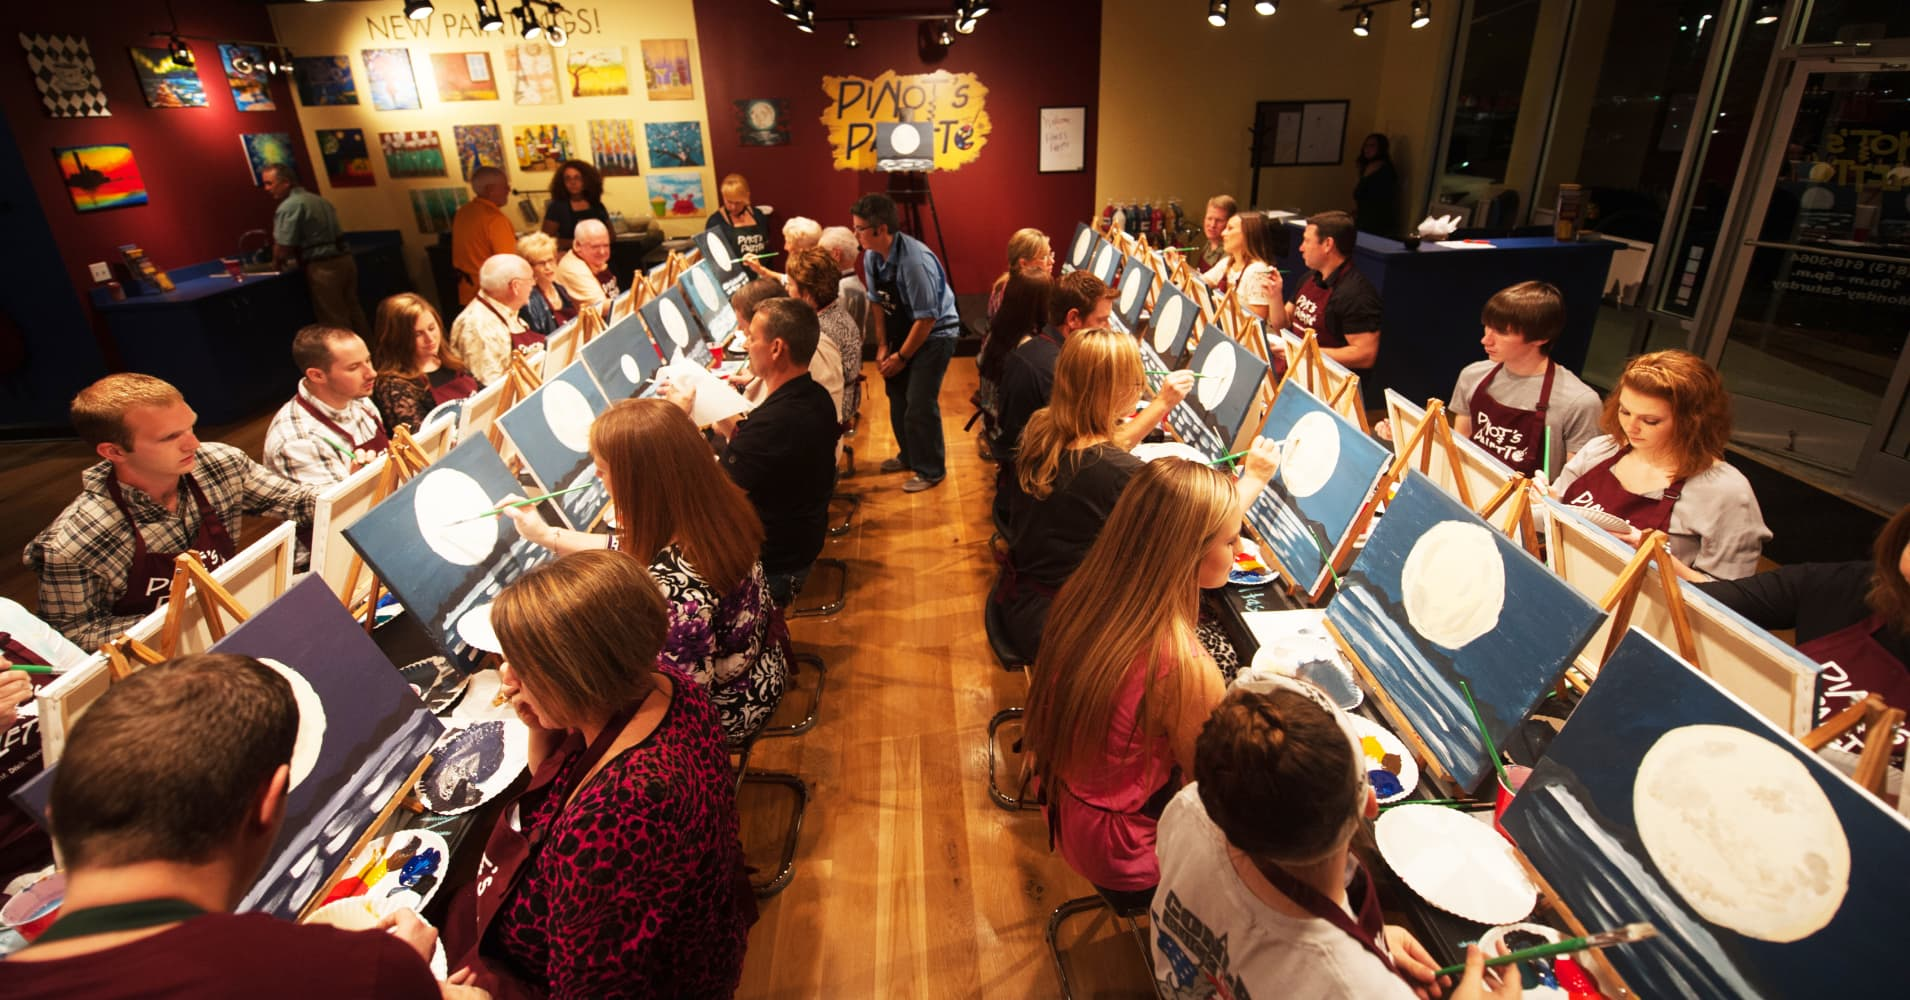 Wine and painting nj mafiamedia for Sip and paint charlotte nc